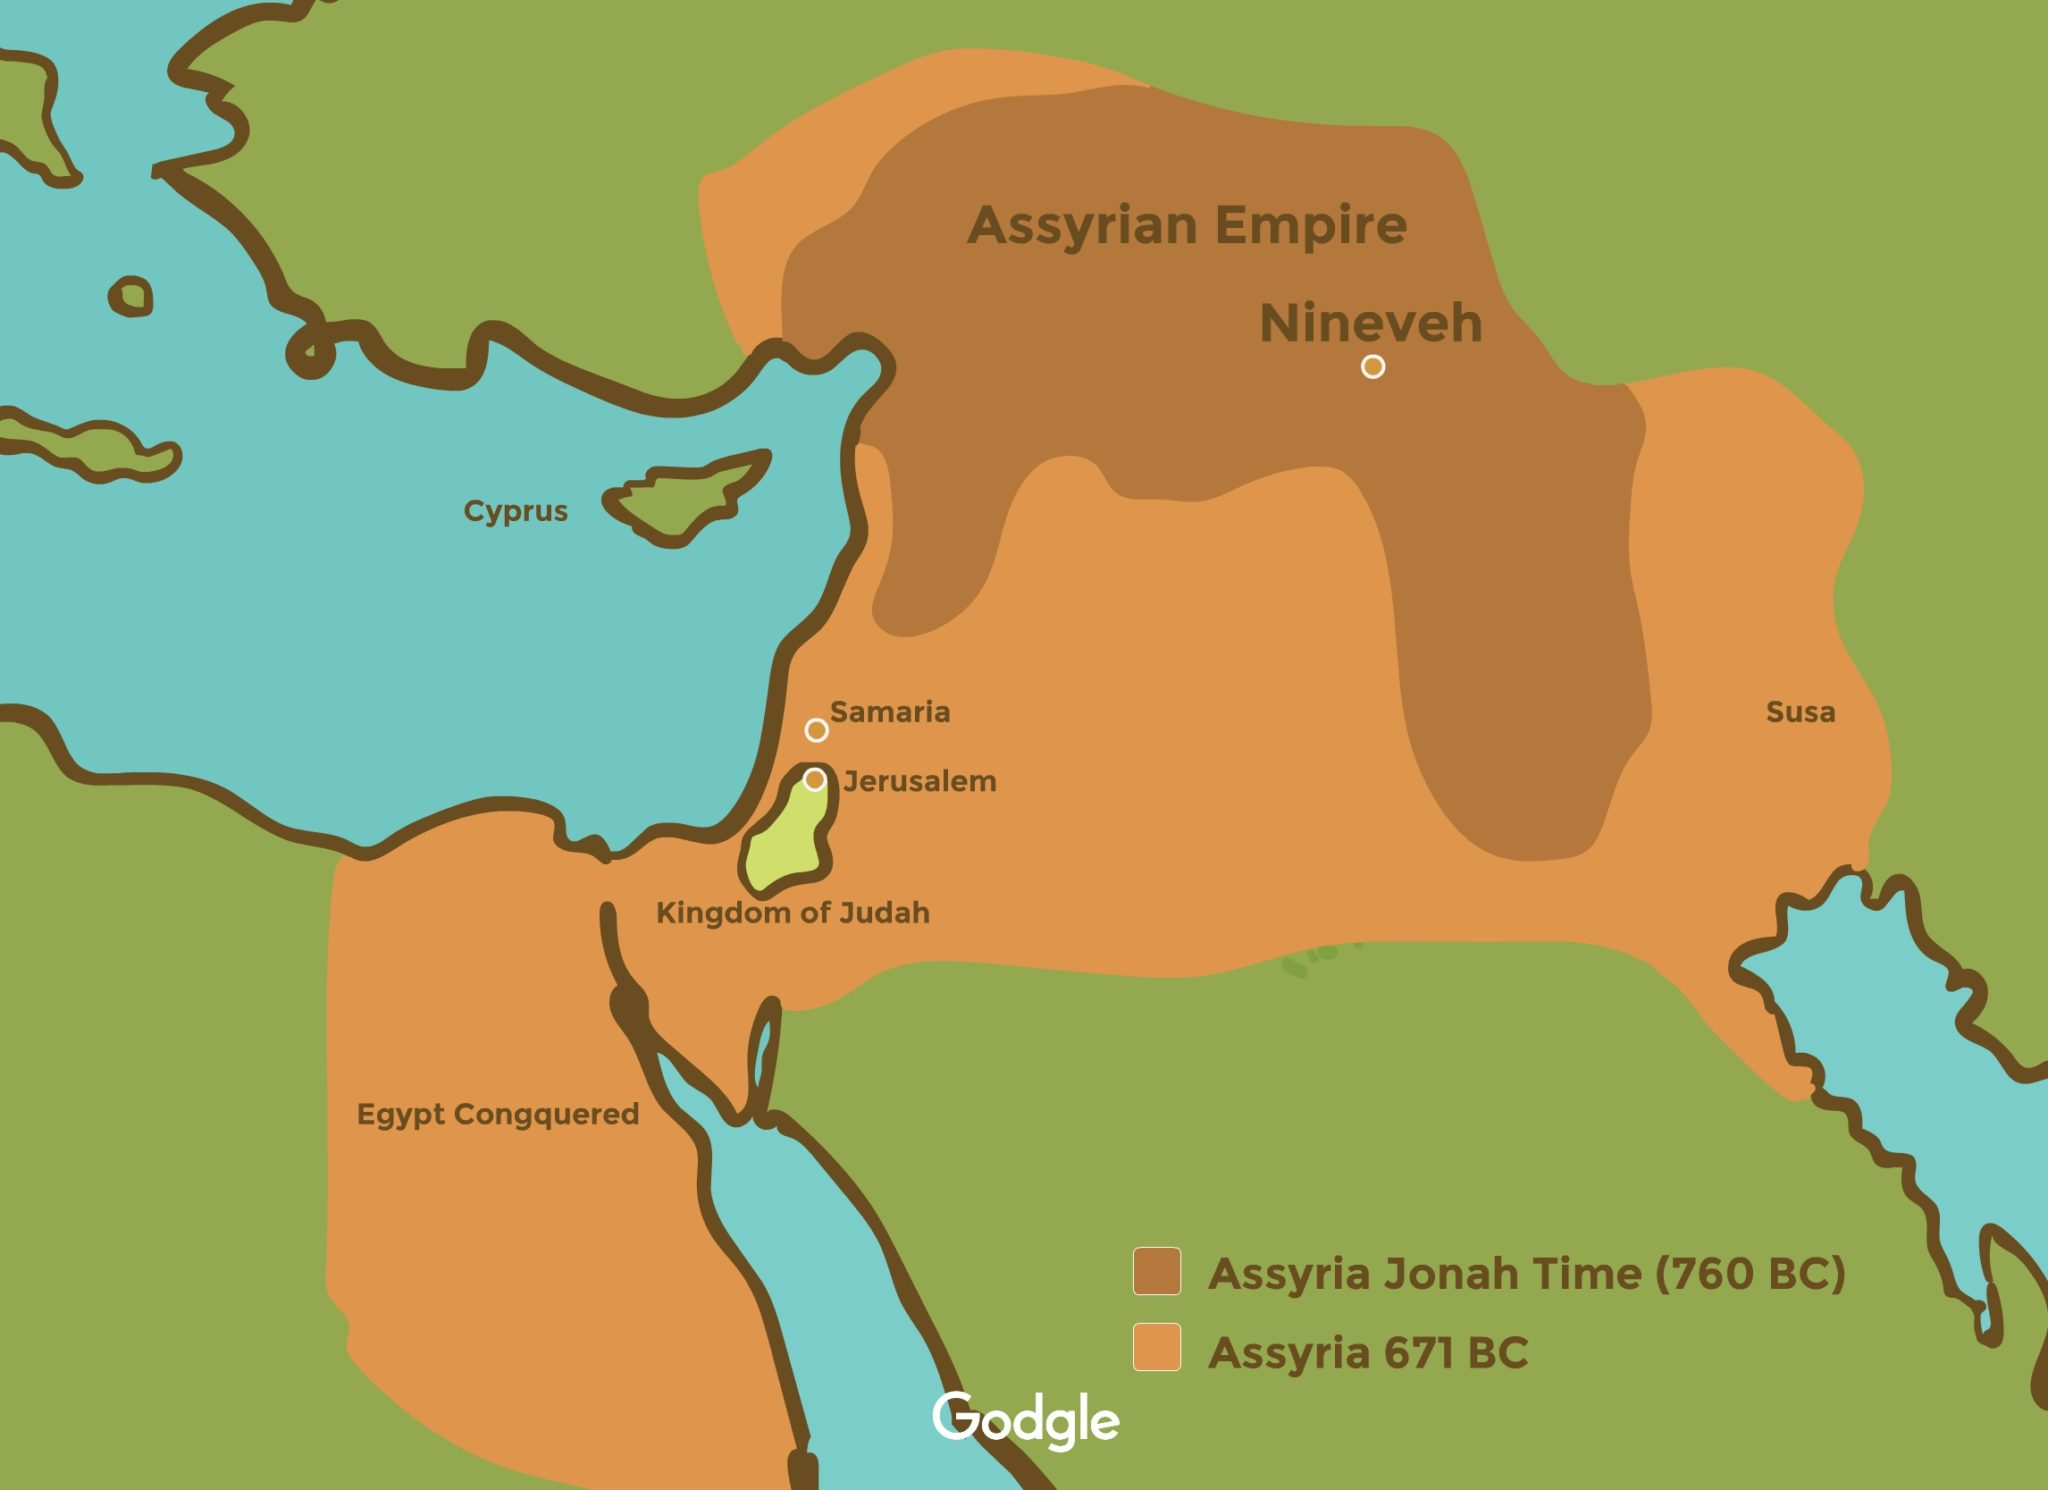 map of assyrian empire on Jonah's time